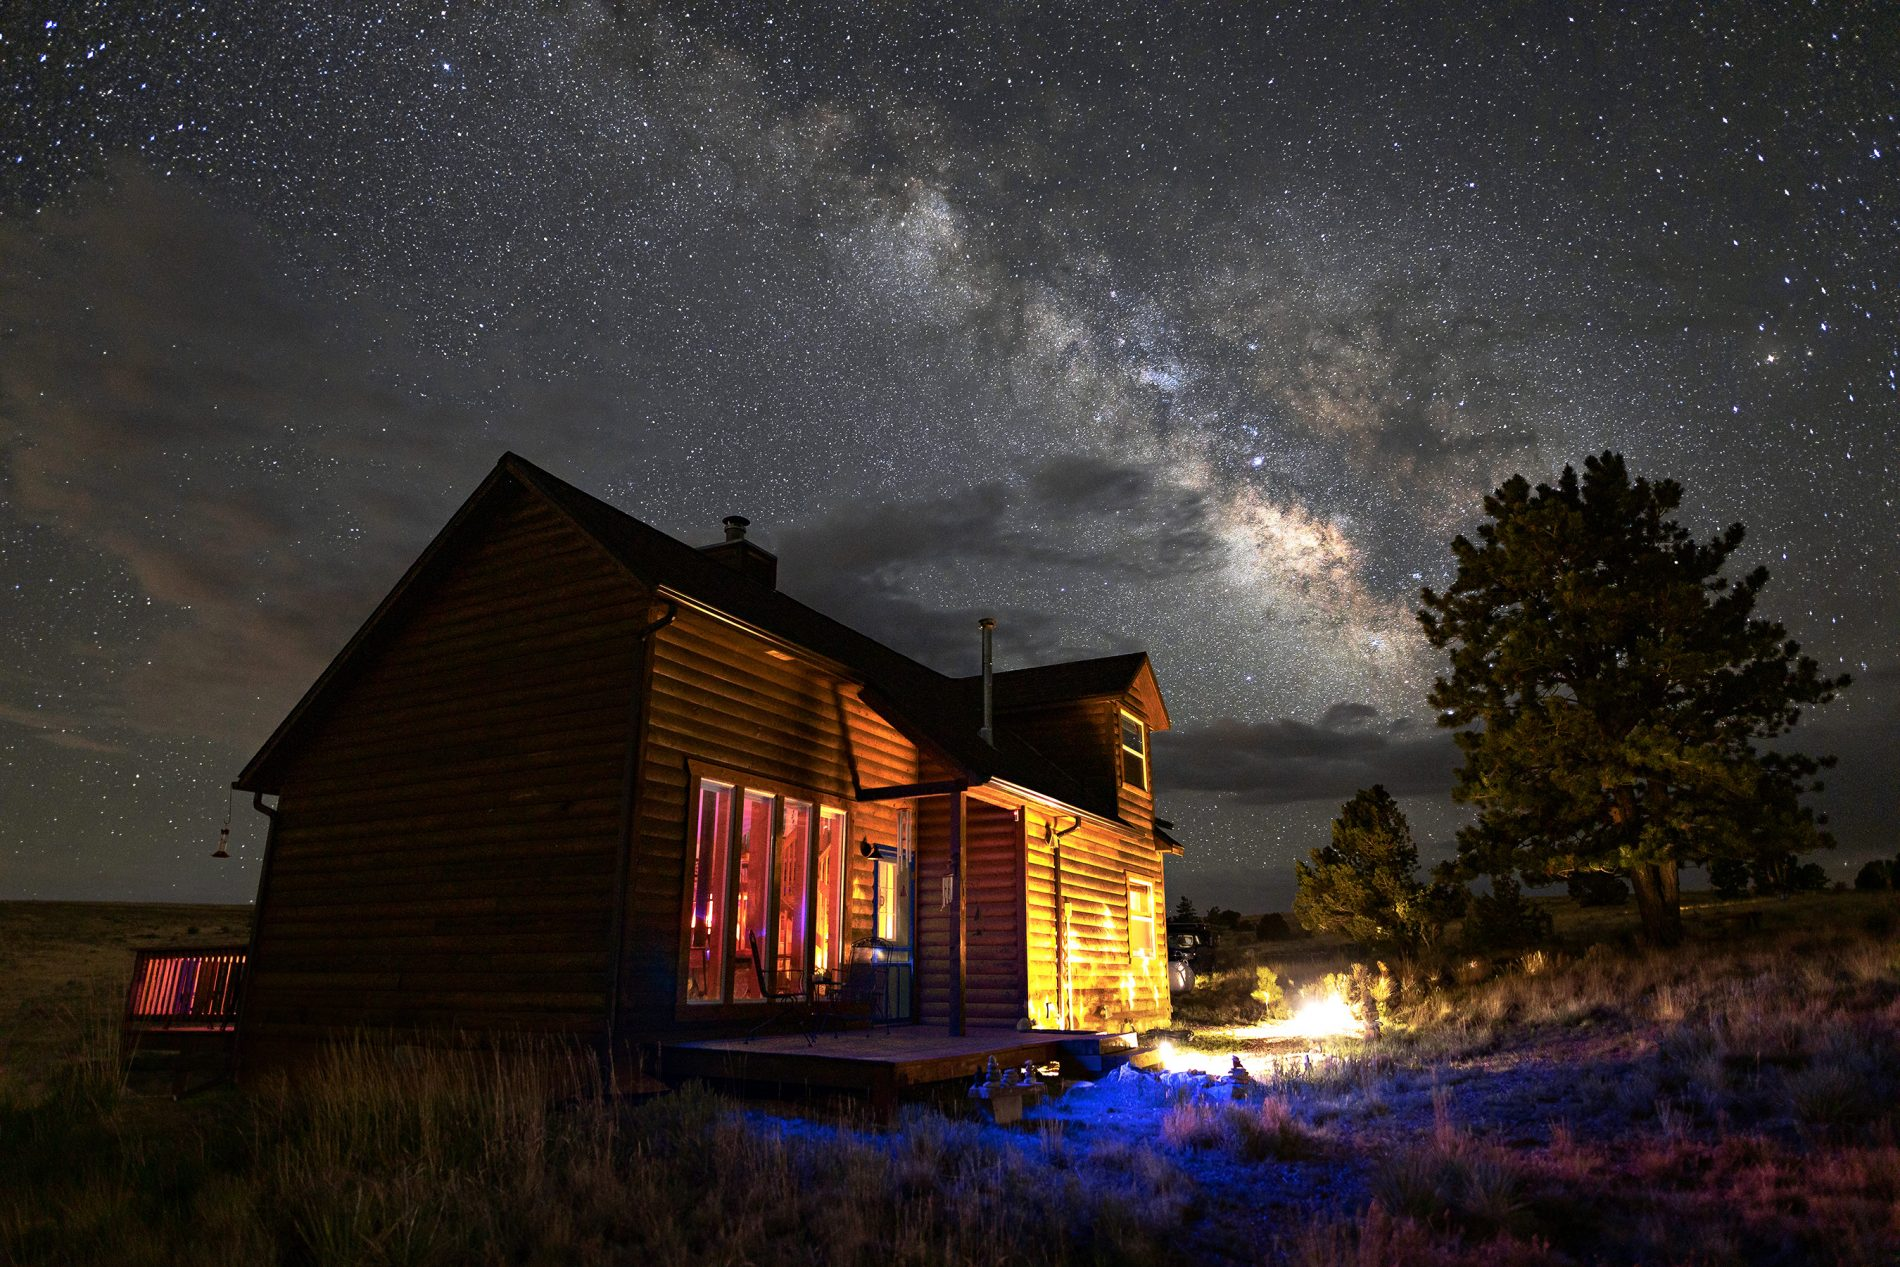 Watch Time Pass Over The Wet Mountain Valley's Night Skies with SKYGLOW